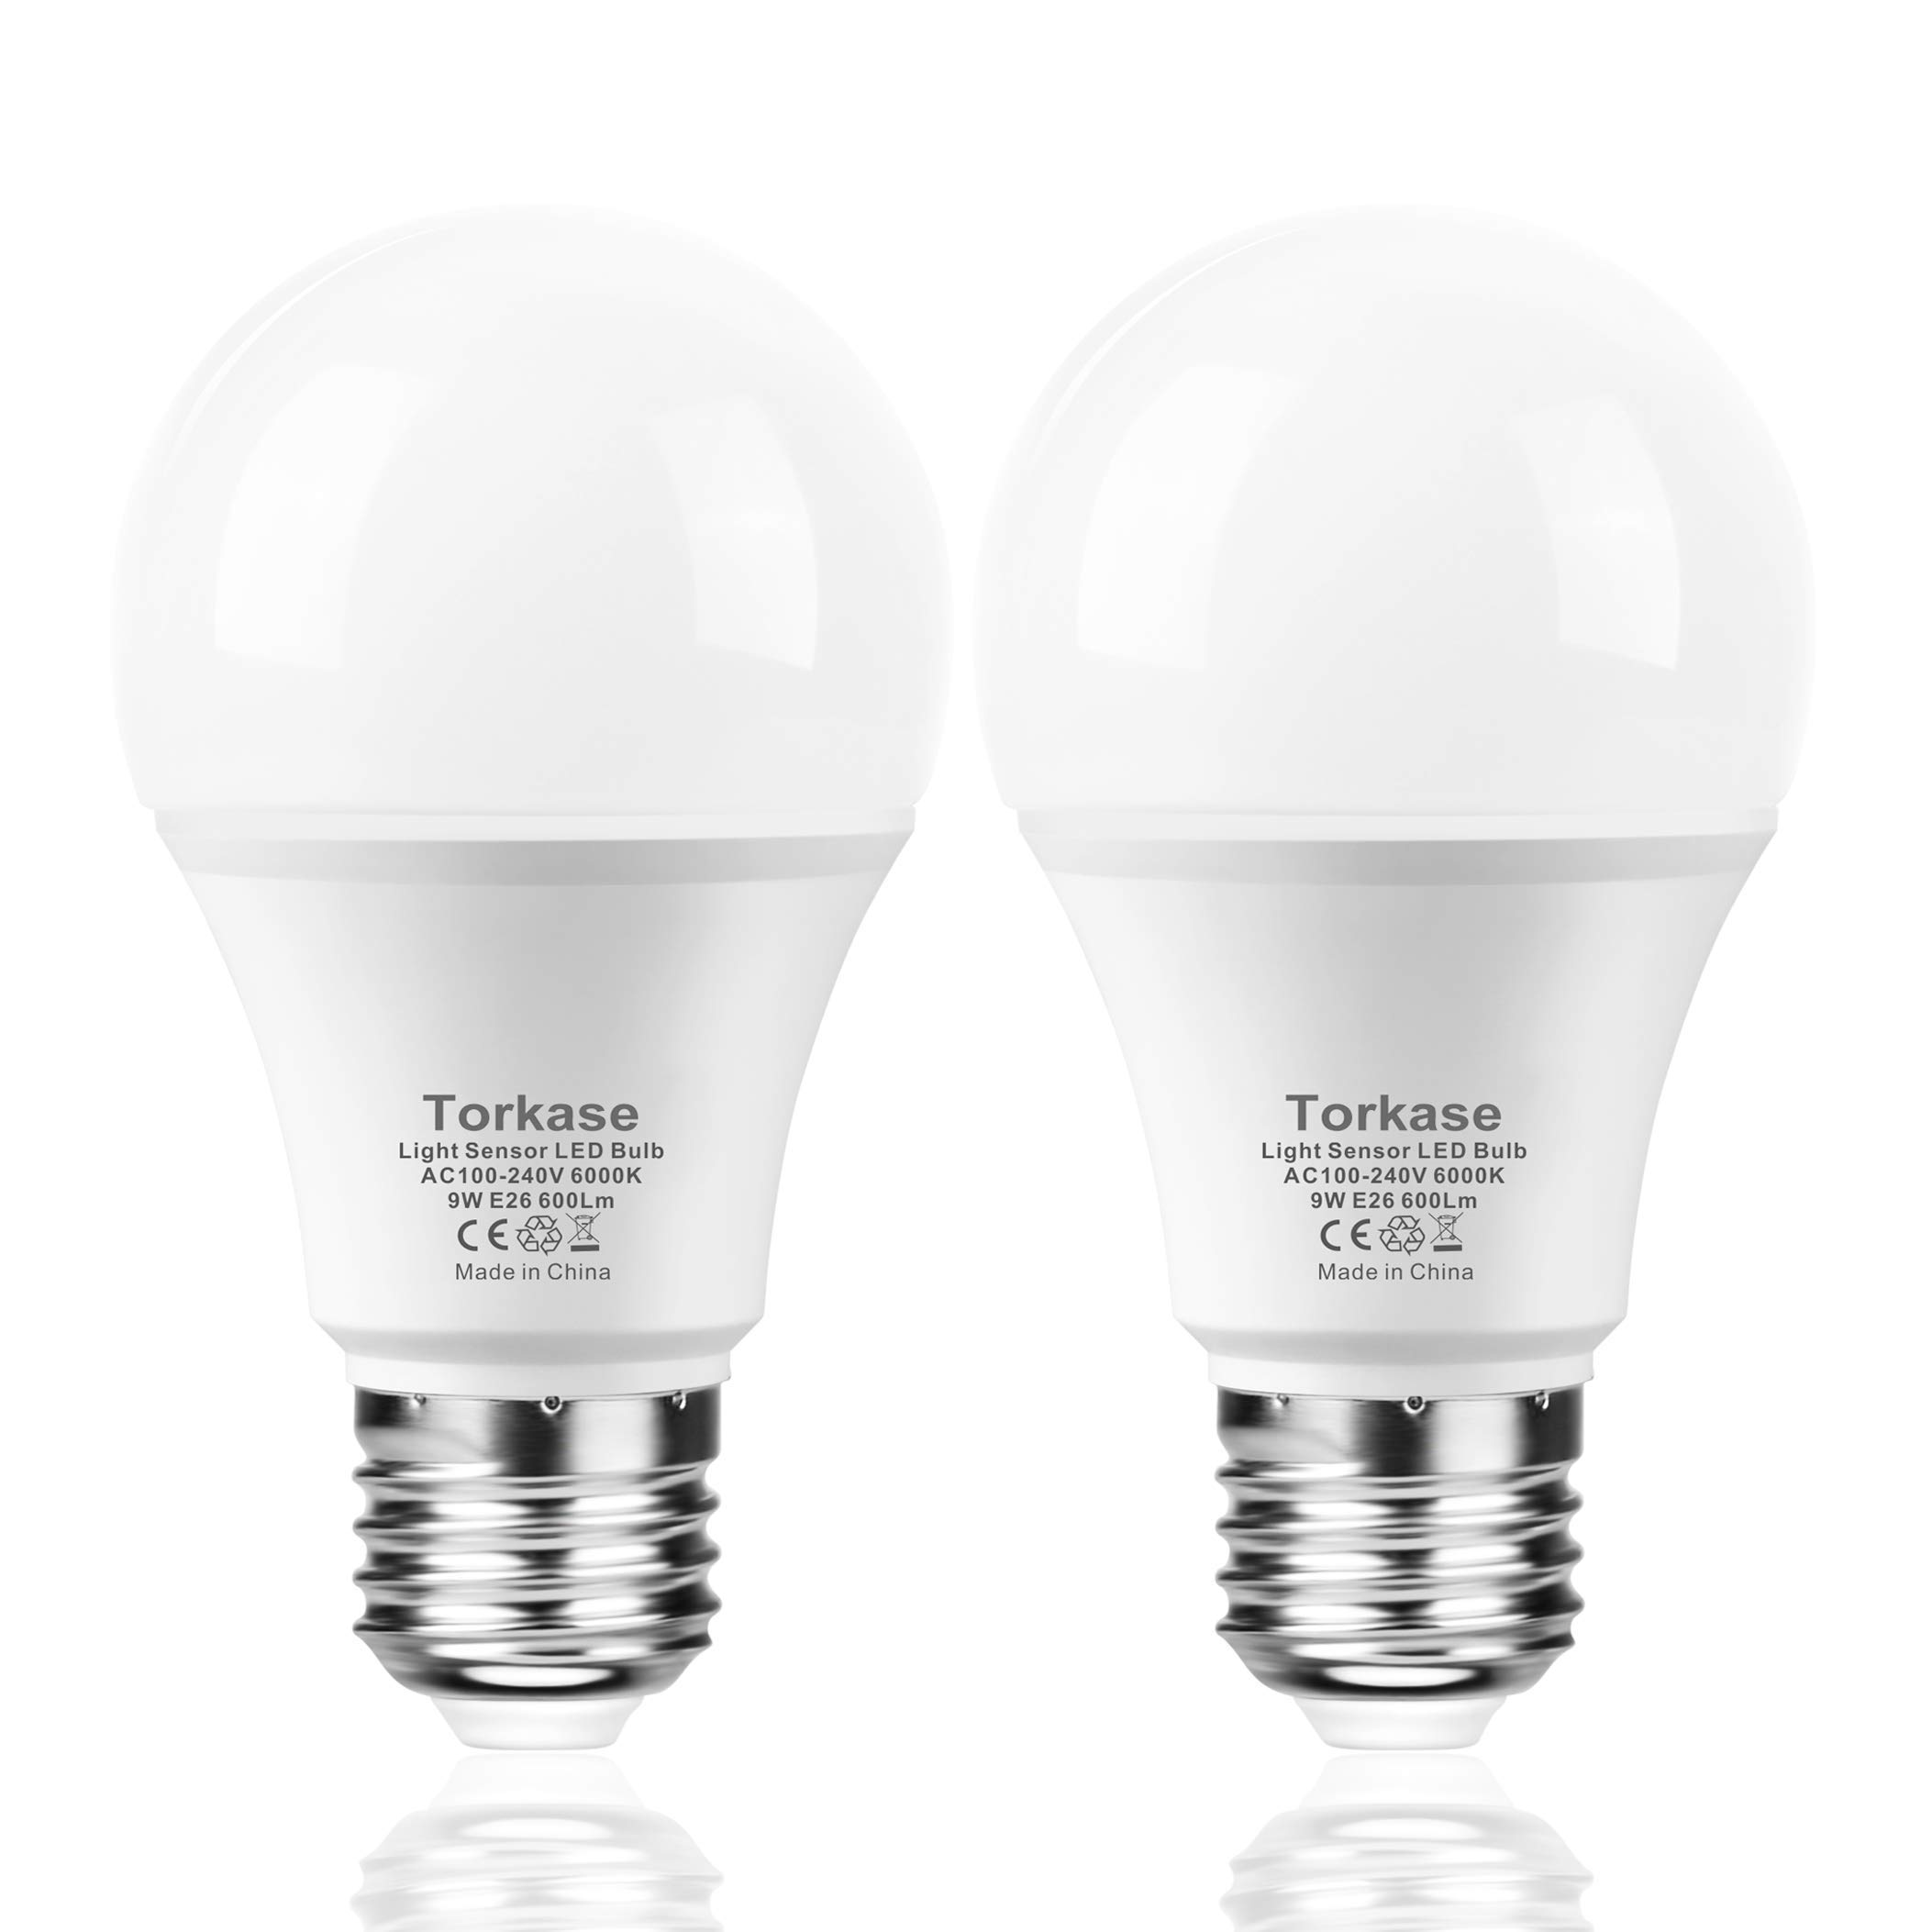 Torkase Dusk to Dawn Light Bulb, Plug and Play, Auto On/Off, Built in Photocell Detector, 85% Energy Saving, 9W/A19/E26/120V, Indoor/Outdoor Yard Porch Patio Garage Warehouse (Cool White, 2 Pack)